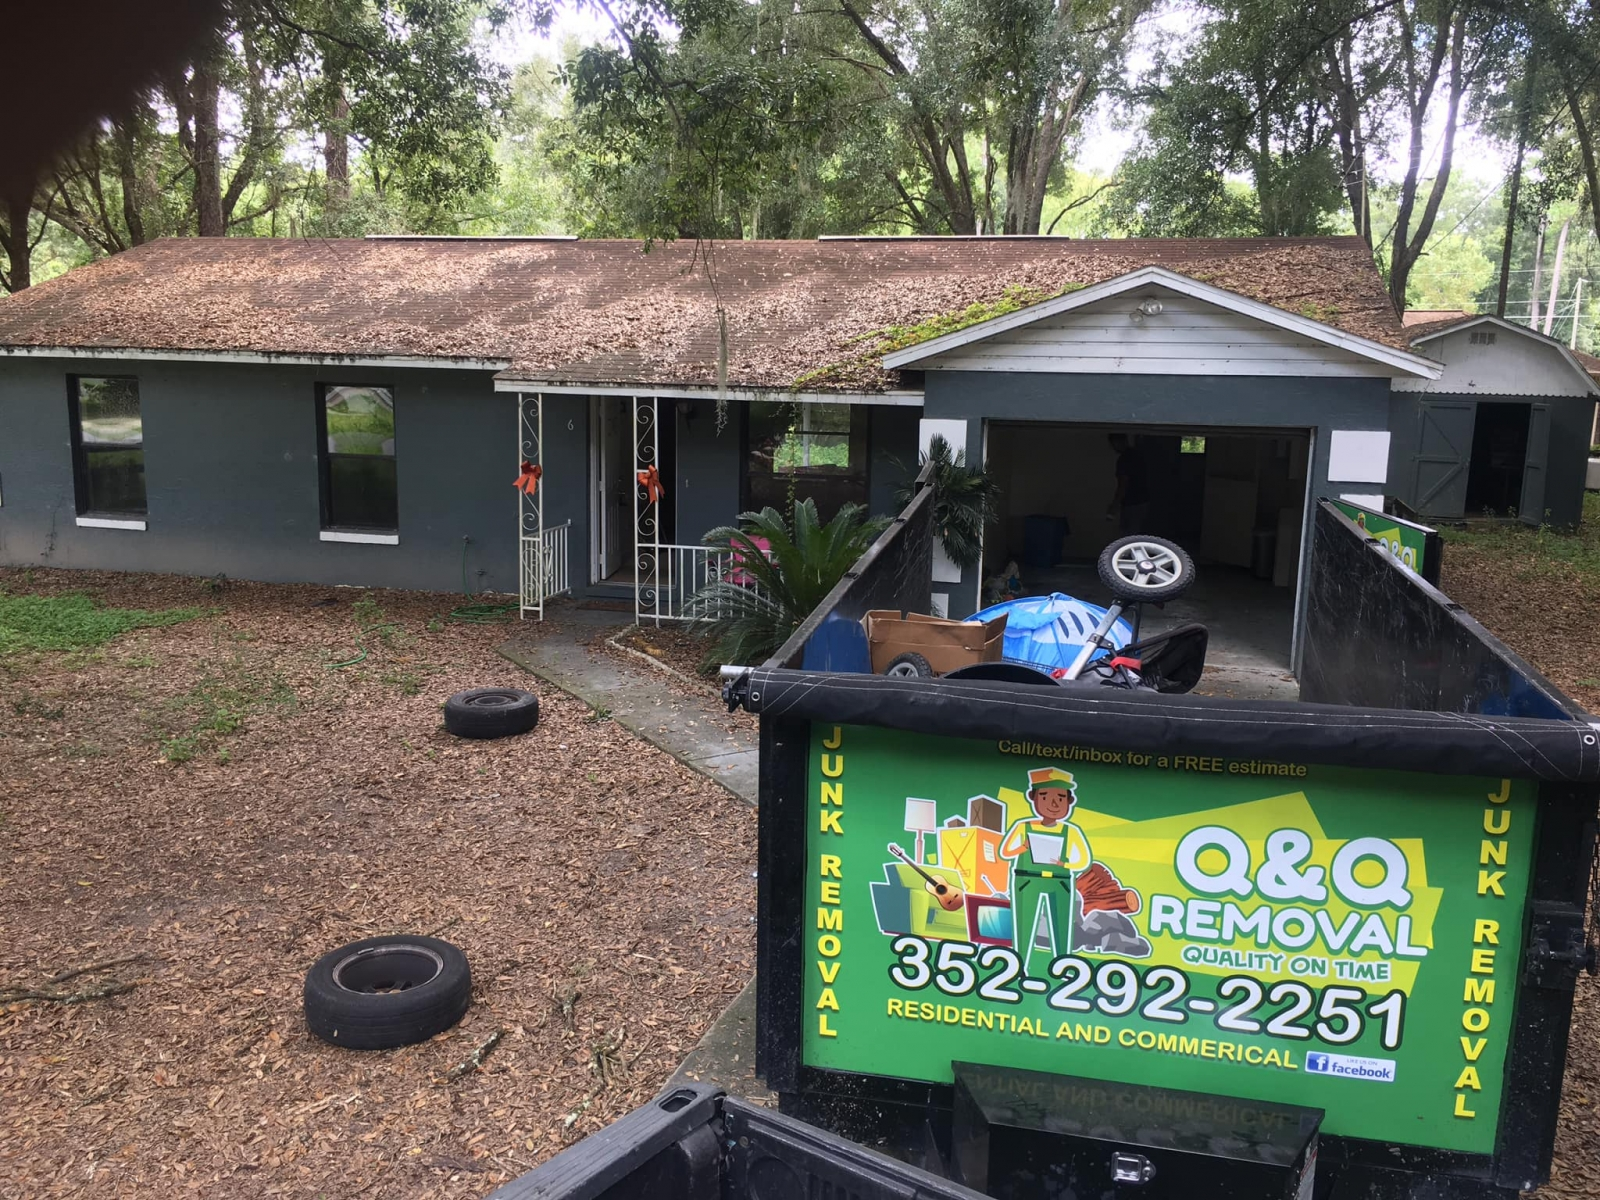 Q & Q House Clean out Ocala FL